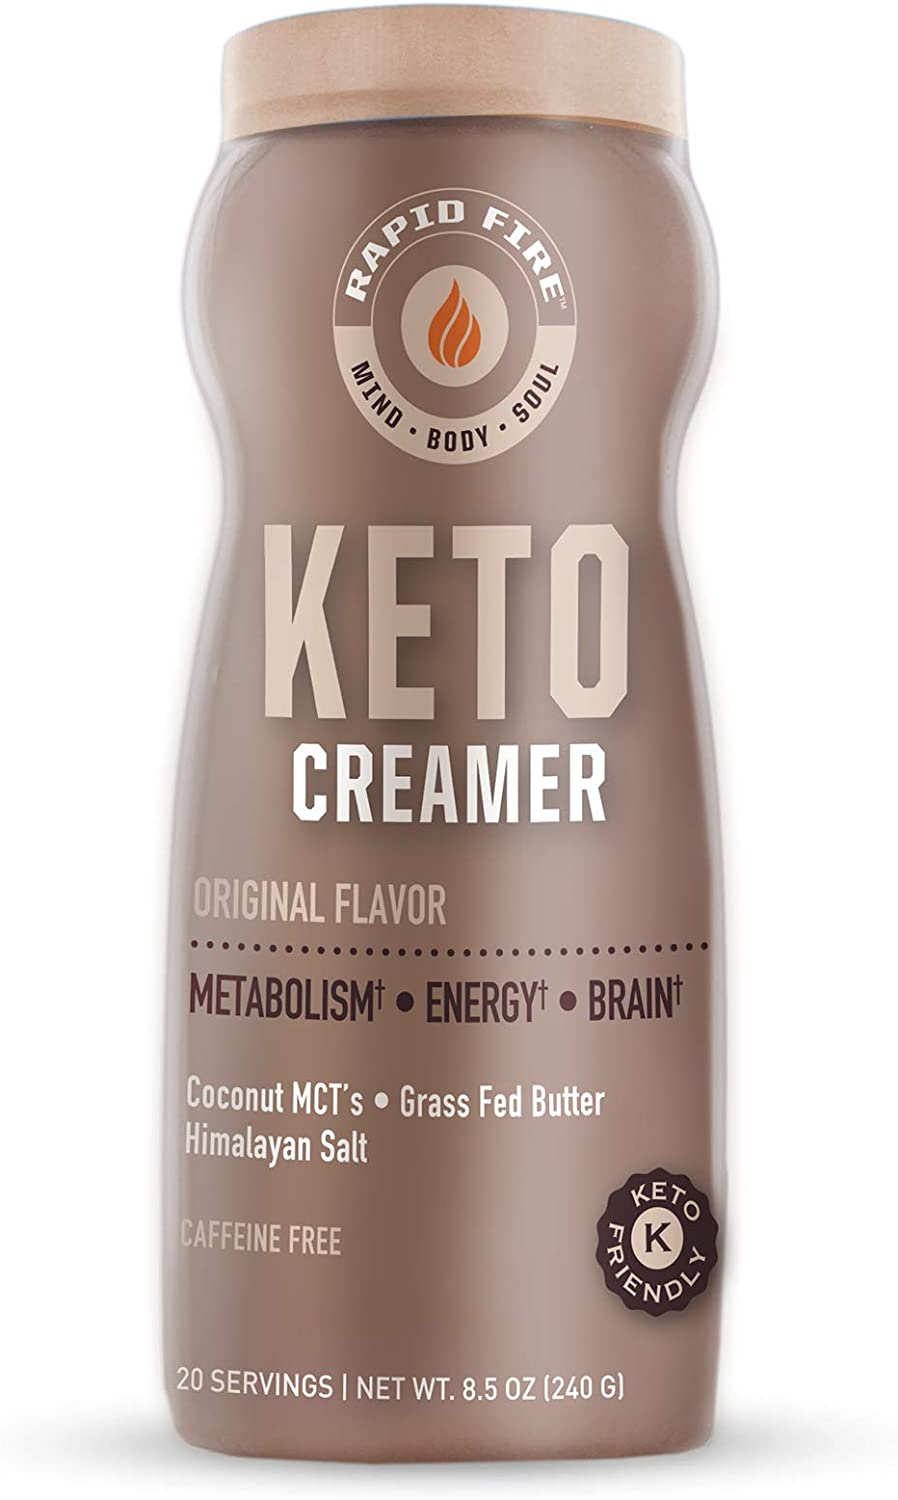 Rapid Fire Ketogenic Creamer with MCT Oil for Coffee or Tea, Supports Energy and Metabolism, Weight Loss, Ketogenic Diet 8.5 oz. (20 servings)